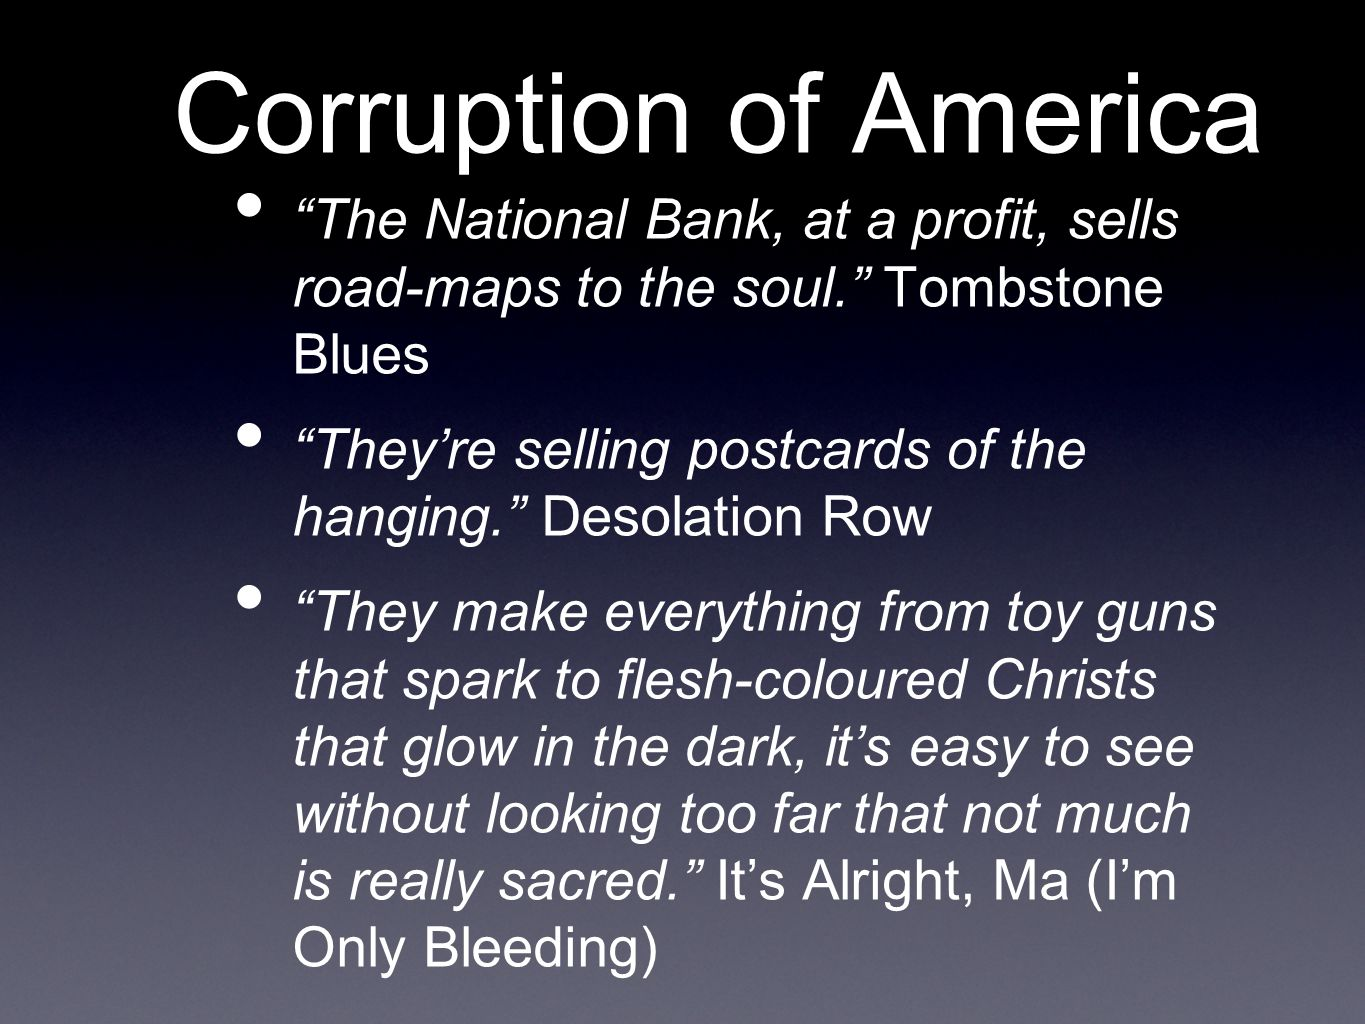 Corruption of America The National Bank, at a profit, sells road-maps to the soul. Tombstone Blues They're selling postcards of the hanging. Desolation Row They make everything from toy guns that spark to flesh-coloured Christs that glow in the dark, it's easy to see without looking too far that not much is really sacred. It's Alright, Ma (I'm Only Bleeding)